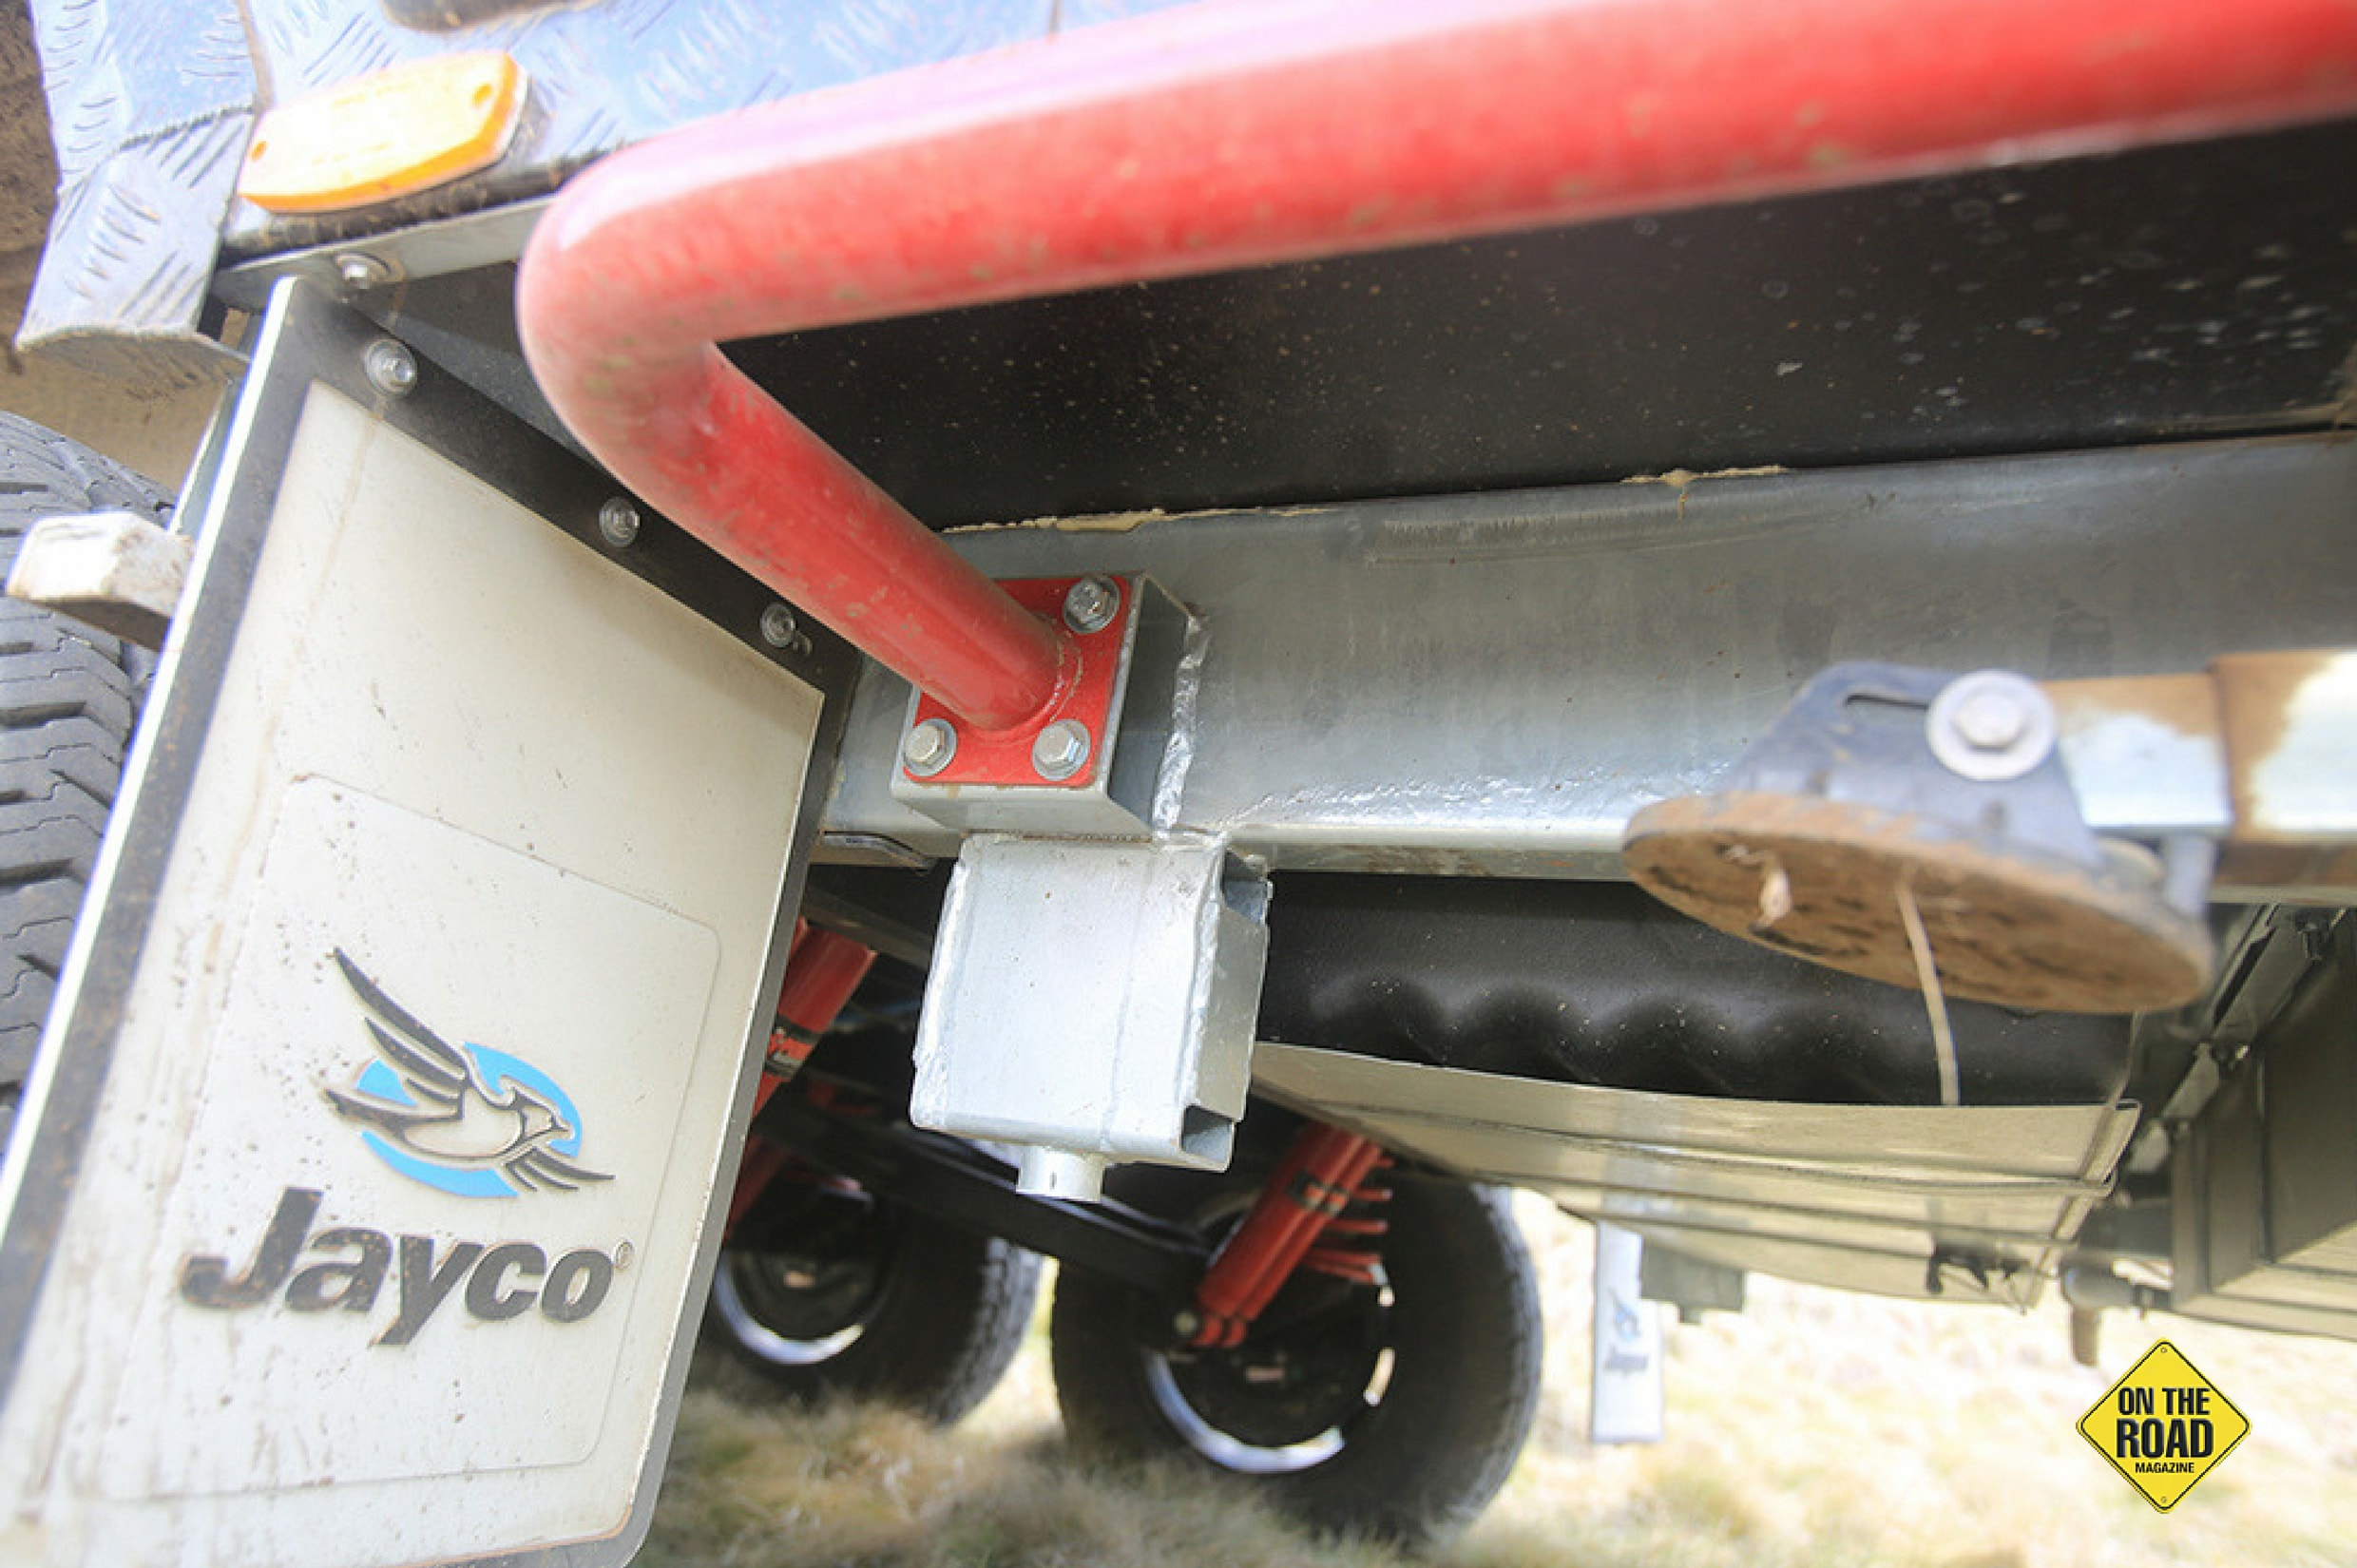 Jayco Adventures towing capability is impressive